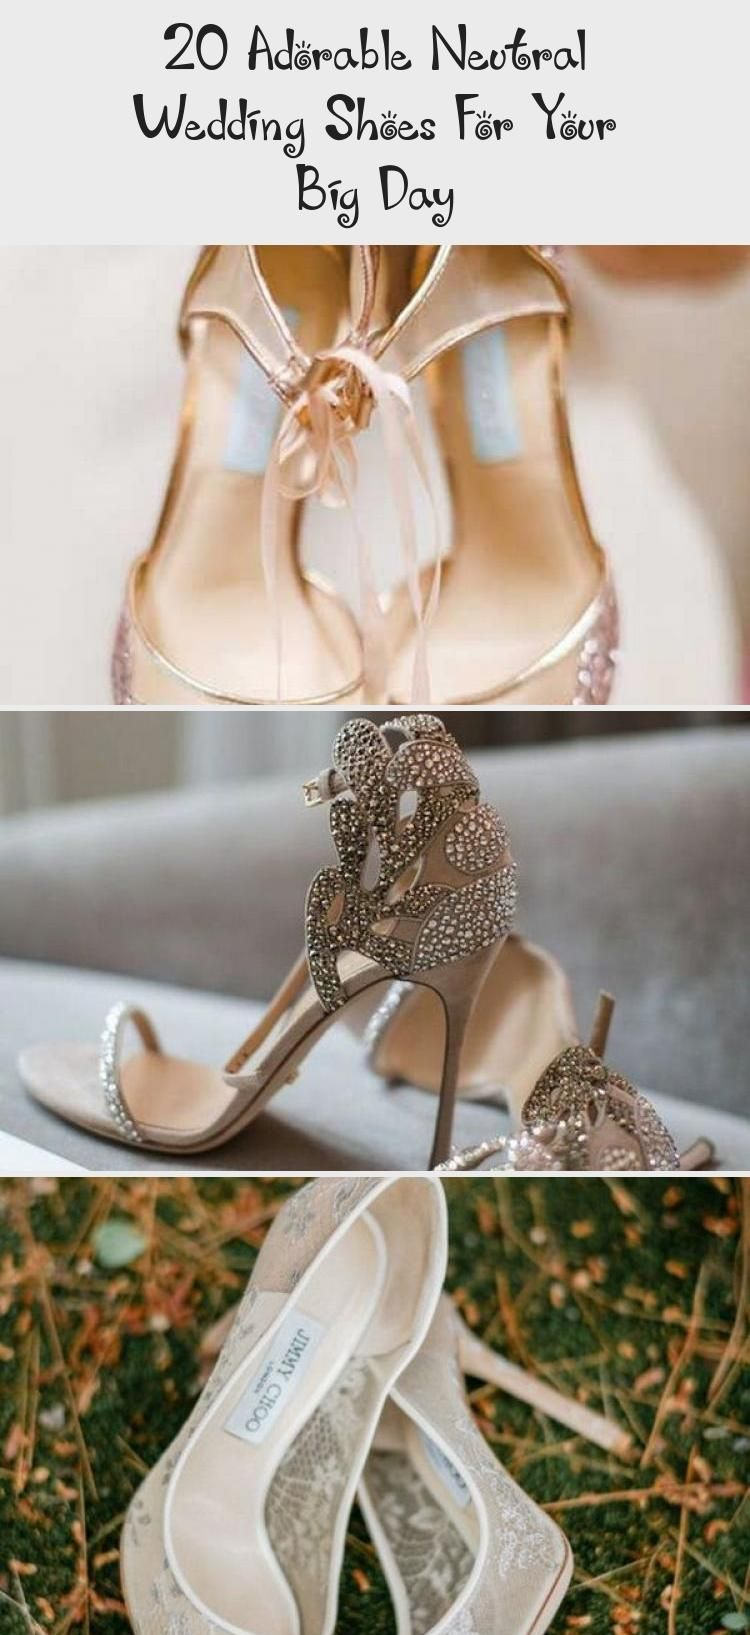 20 Adorable Neutral Wedding Shoes For Your Big Day -  Women Shoes